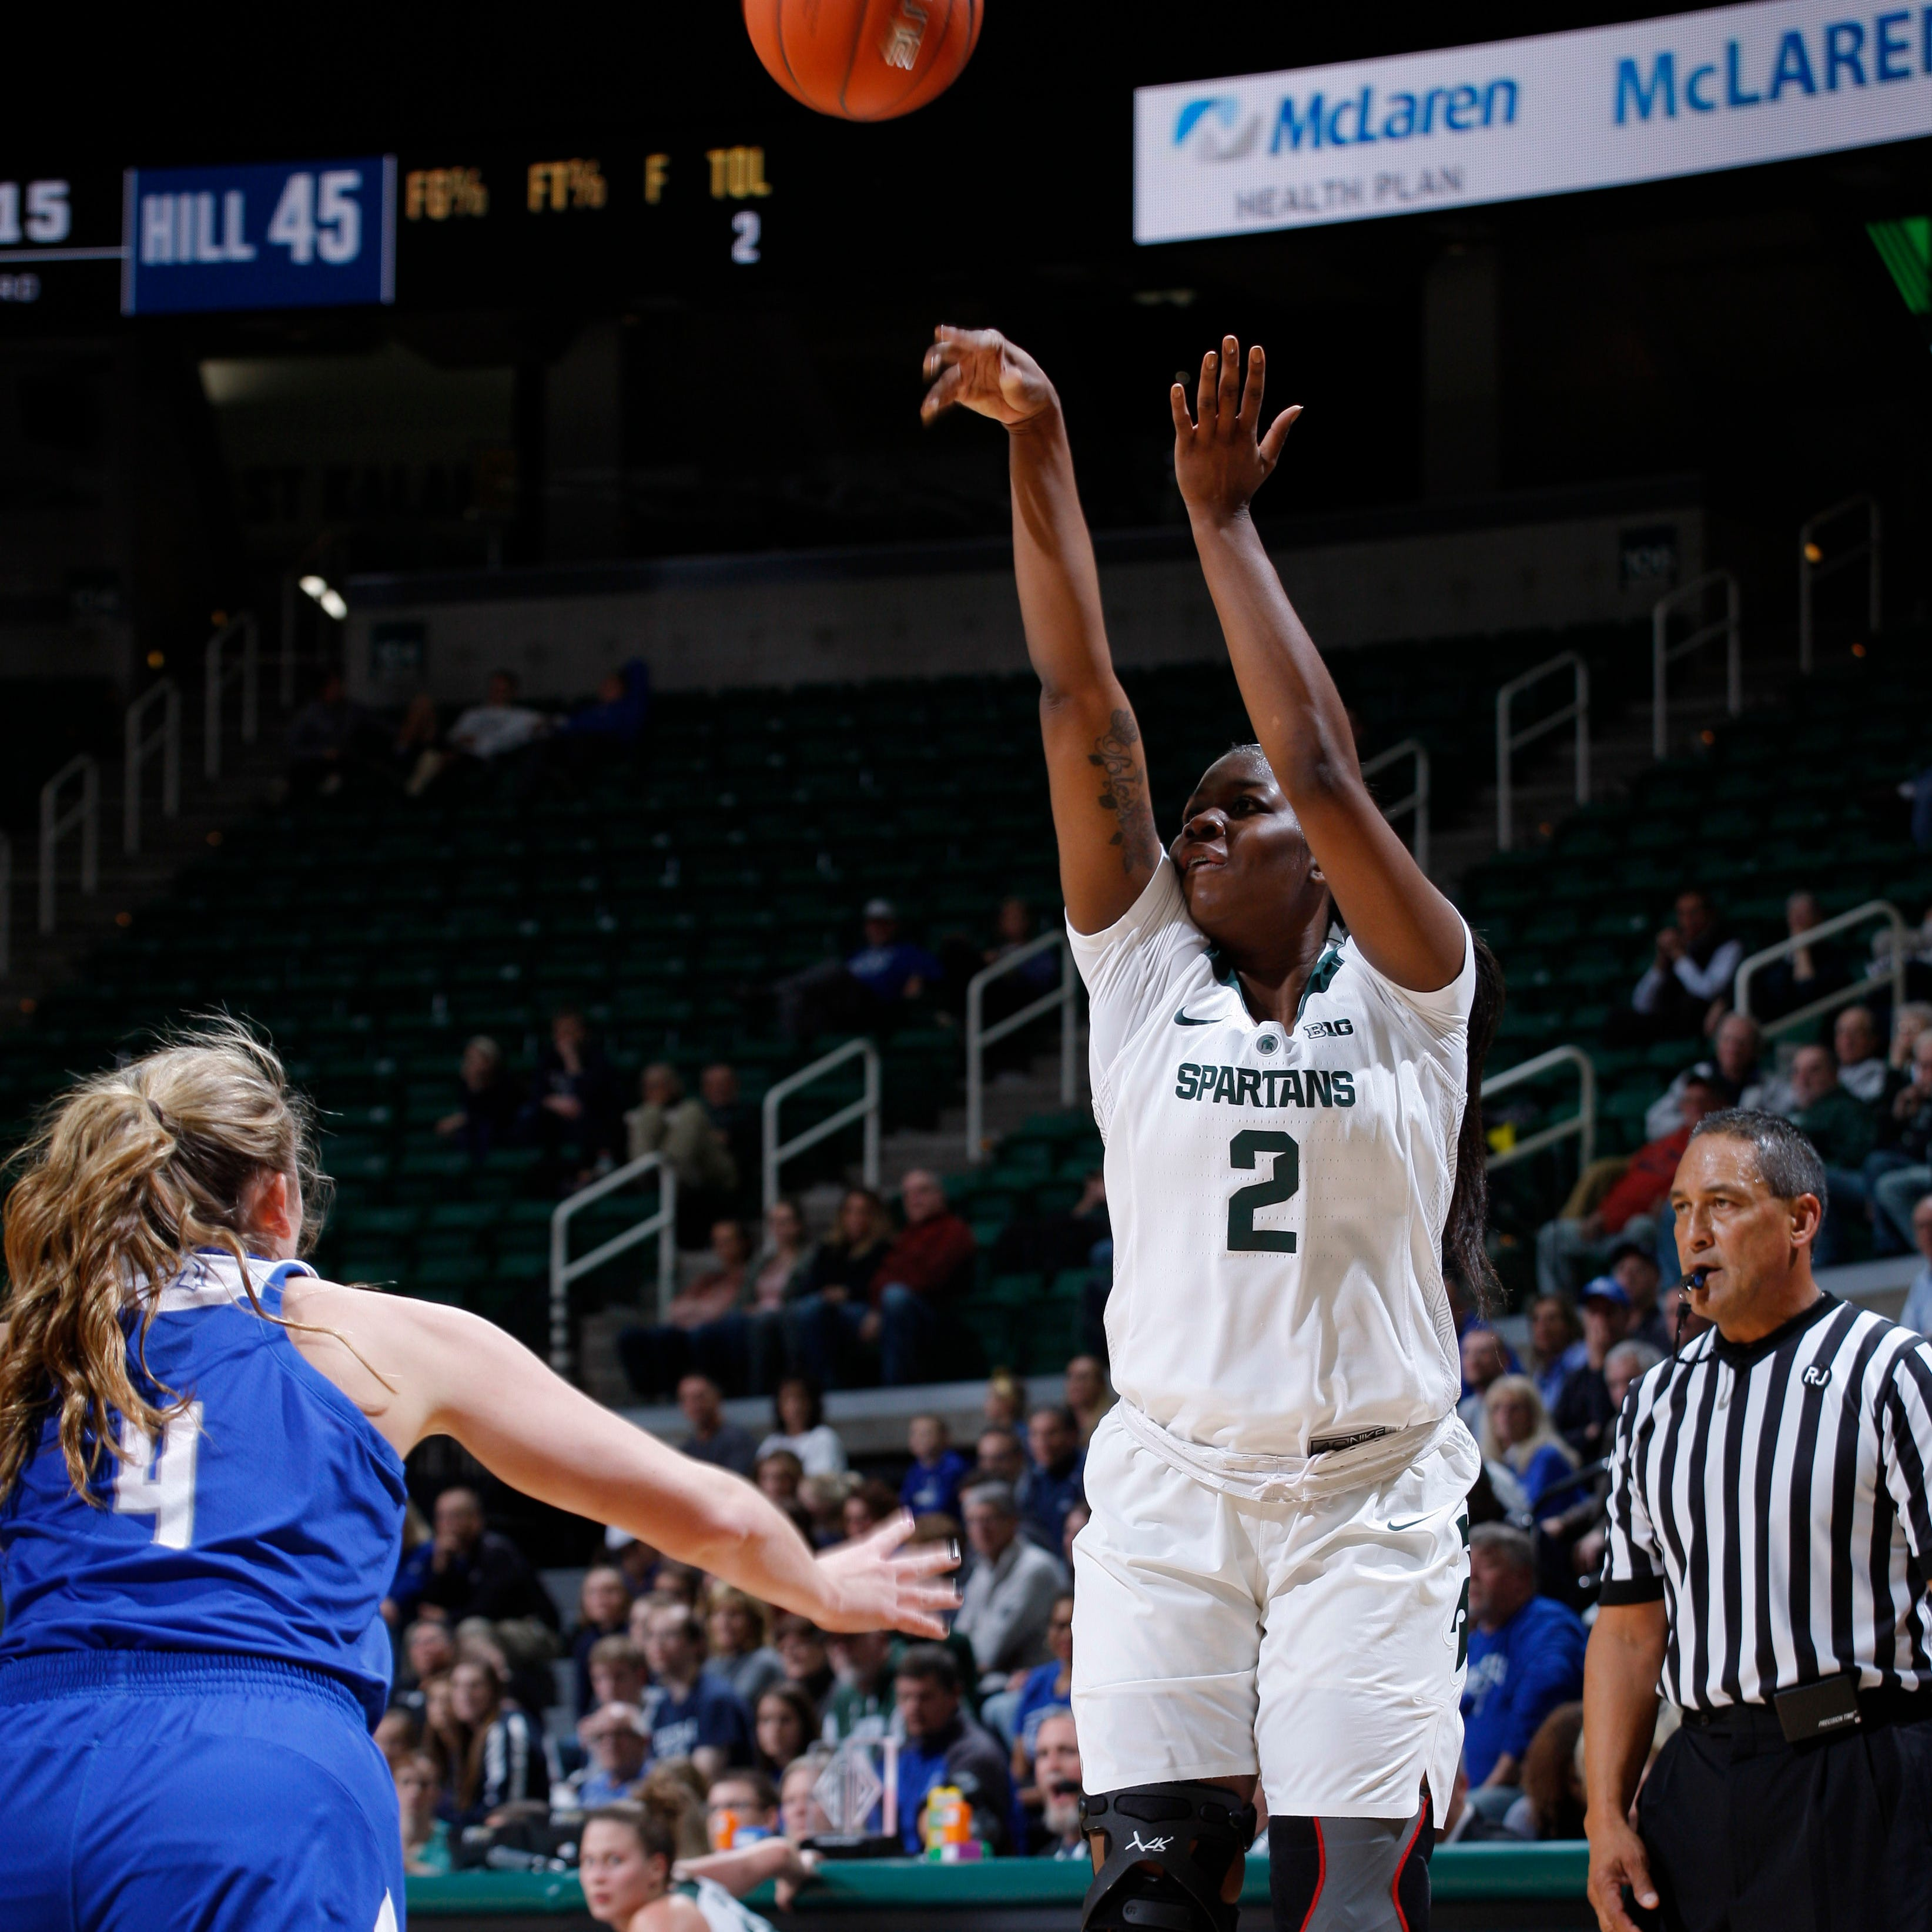 Michigan State women cruise past East Tennessee State, 75-53